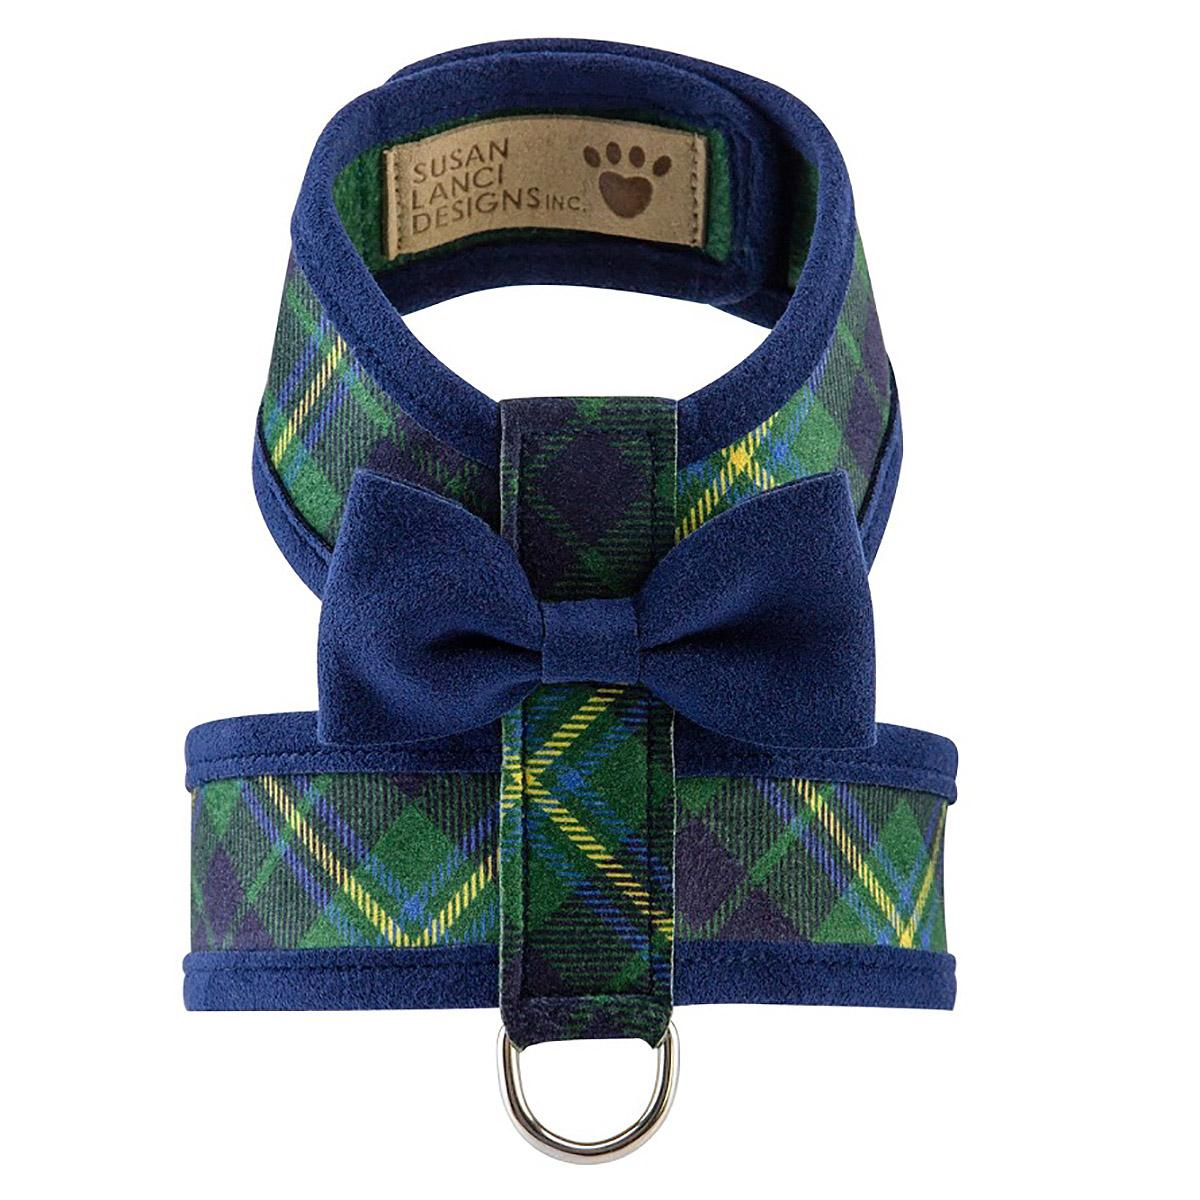 Scotty Tinkie Two-Tone Dog Harness by Susan Lanci - Forest Plaid